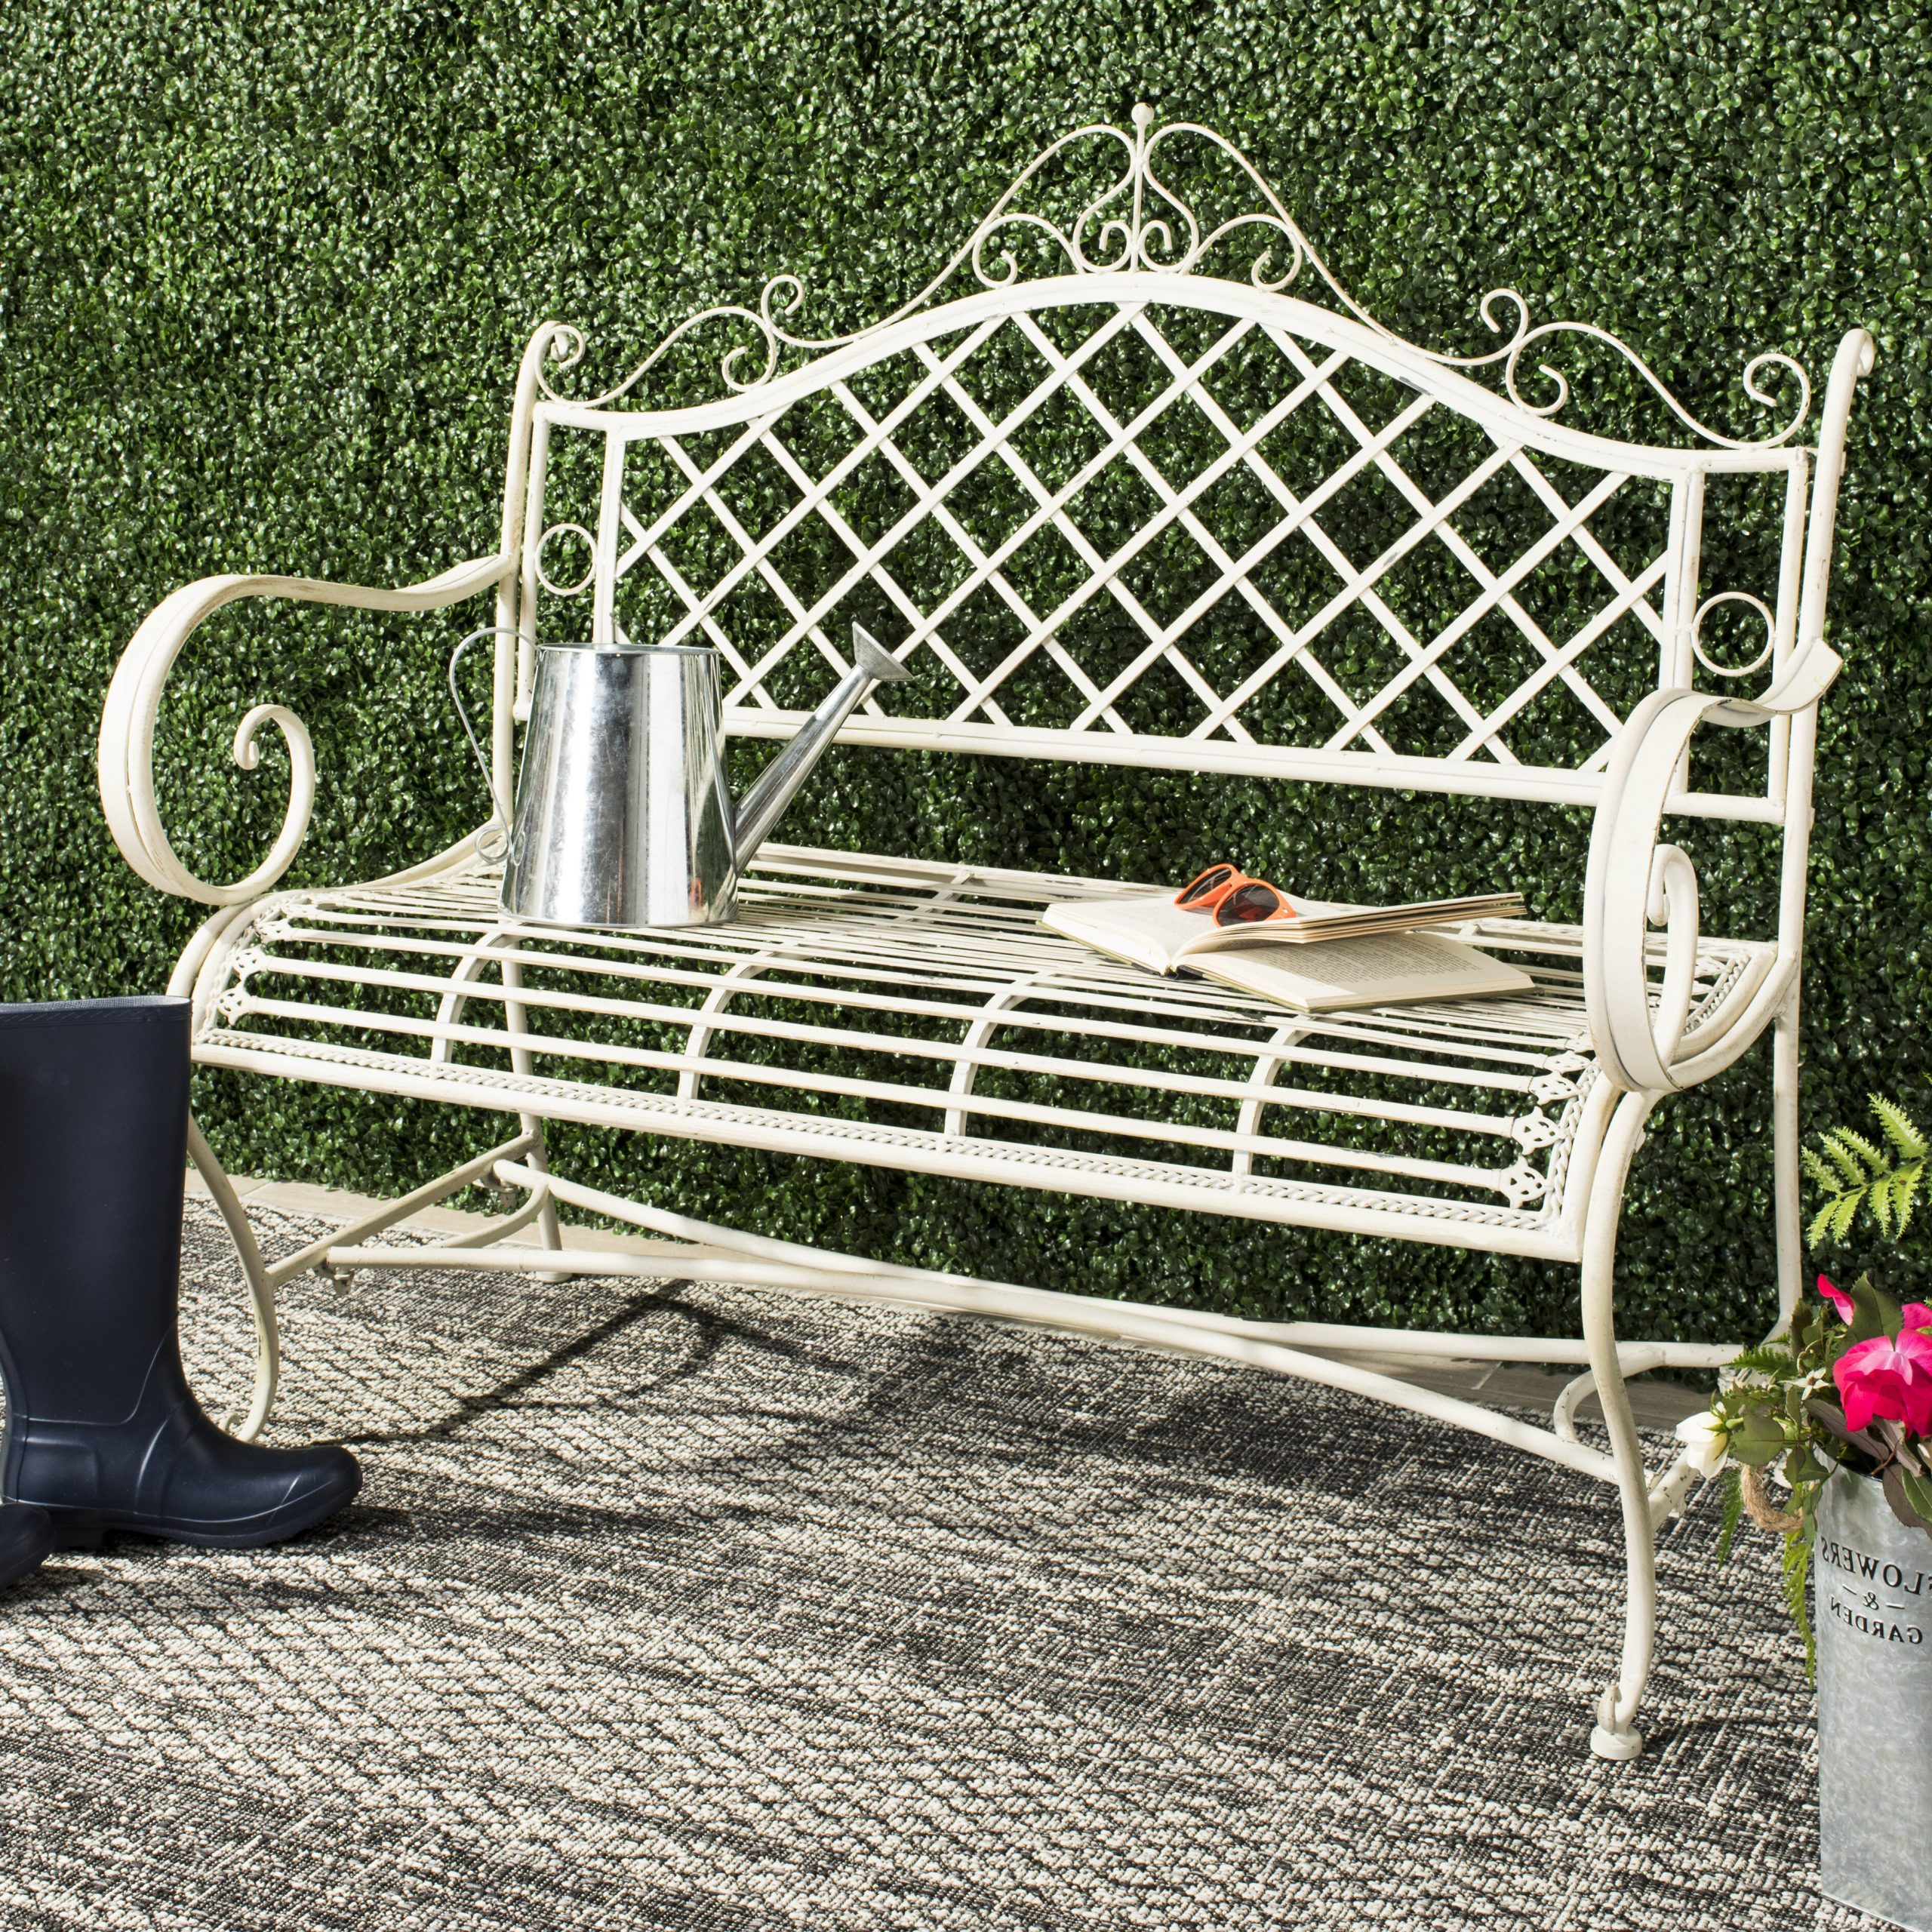 Maliyah Wooden Garden Benches With Well Liked Hornellsville Wrought Iron Garden Bench (View 10 of 30)